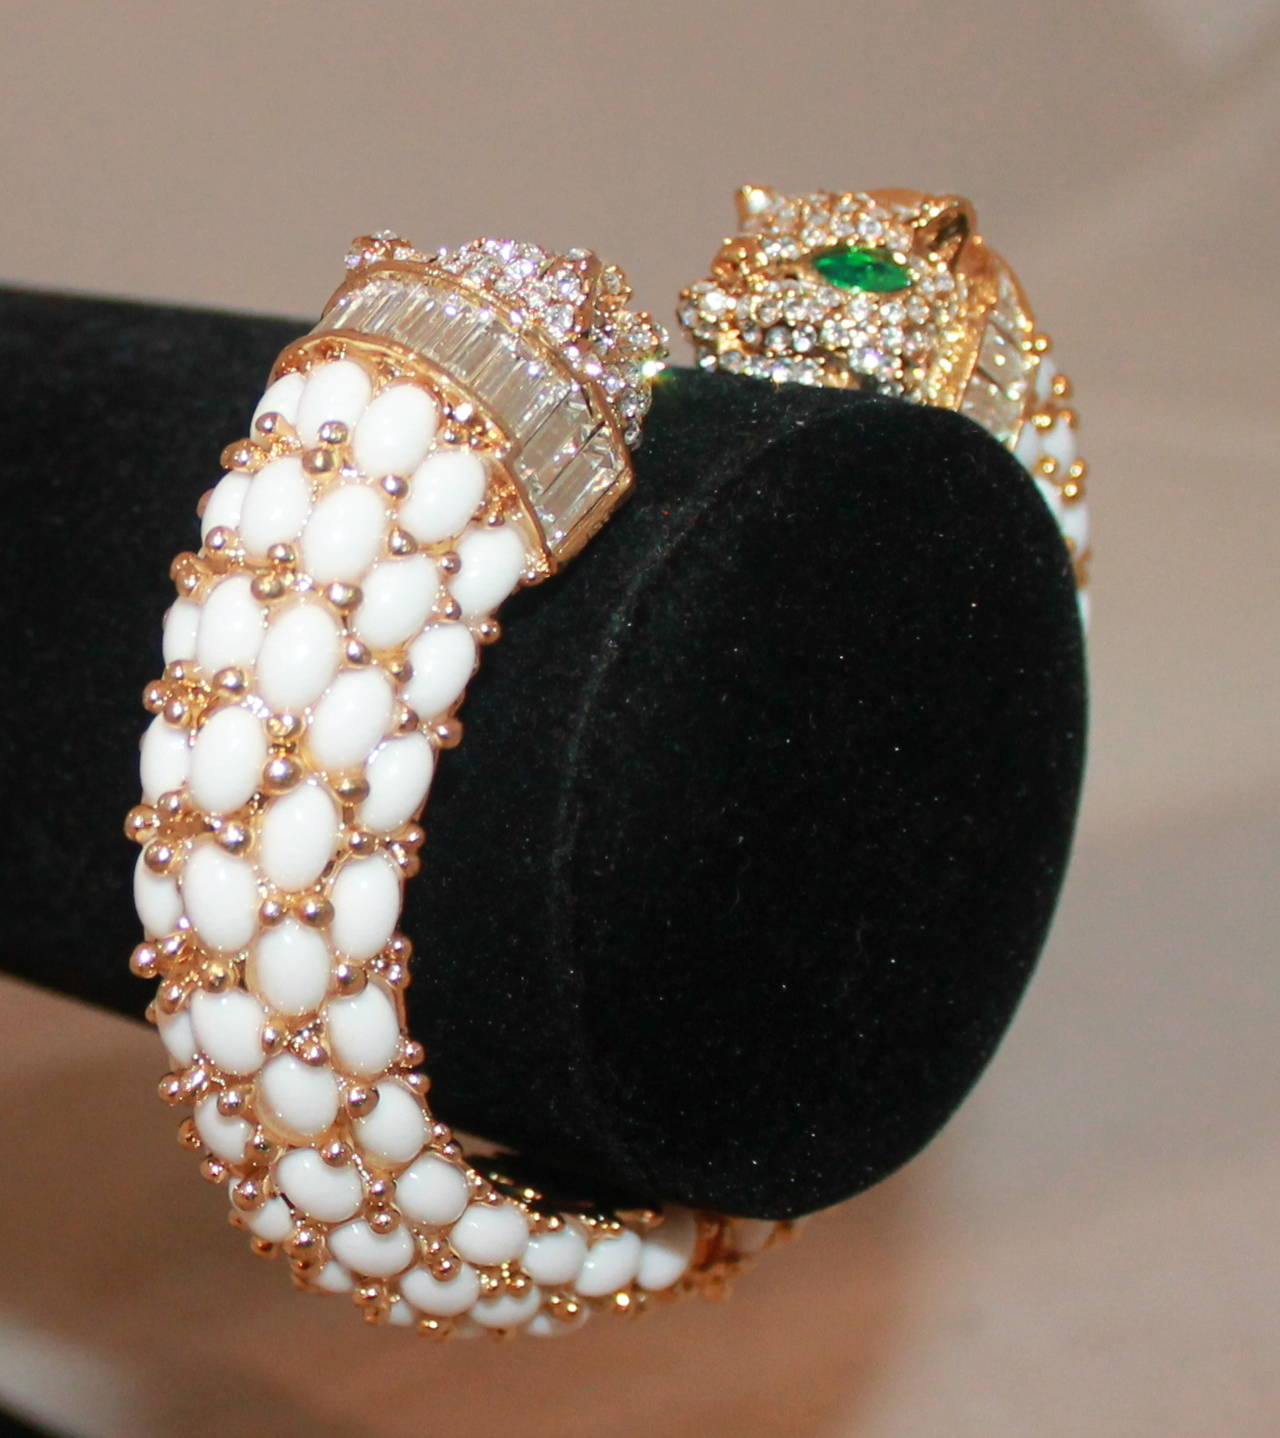 Angelique de Paris Rhinestone Lioness Cuff. This cuff is in excellent condition and is a one of a kind piece.  Width- 0.75